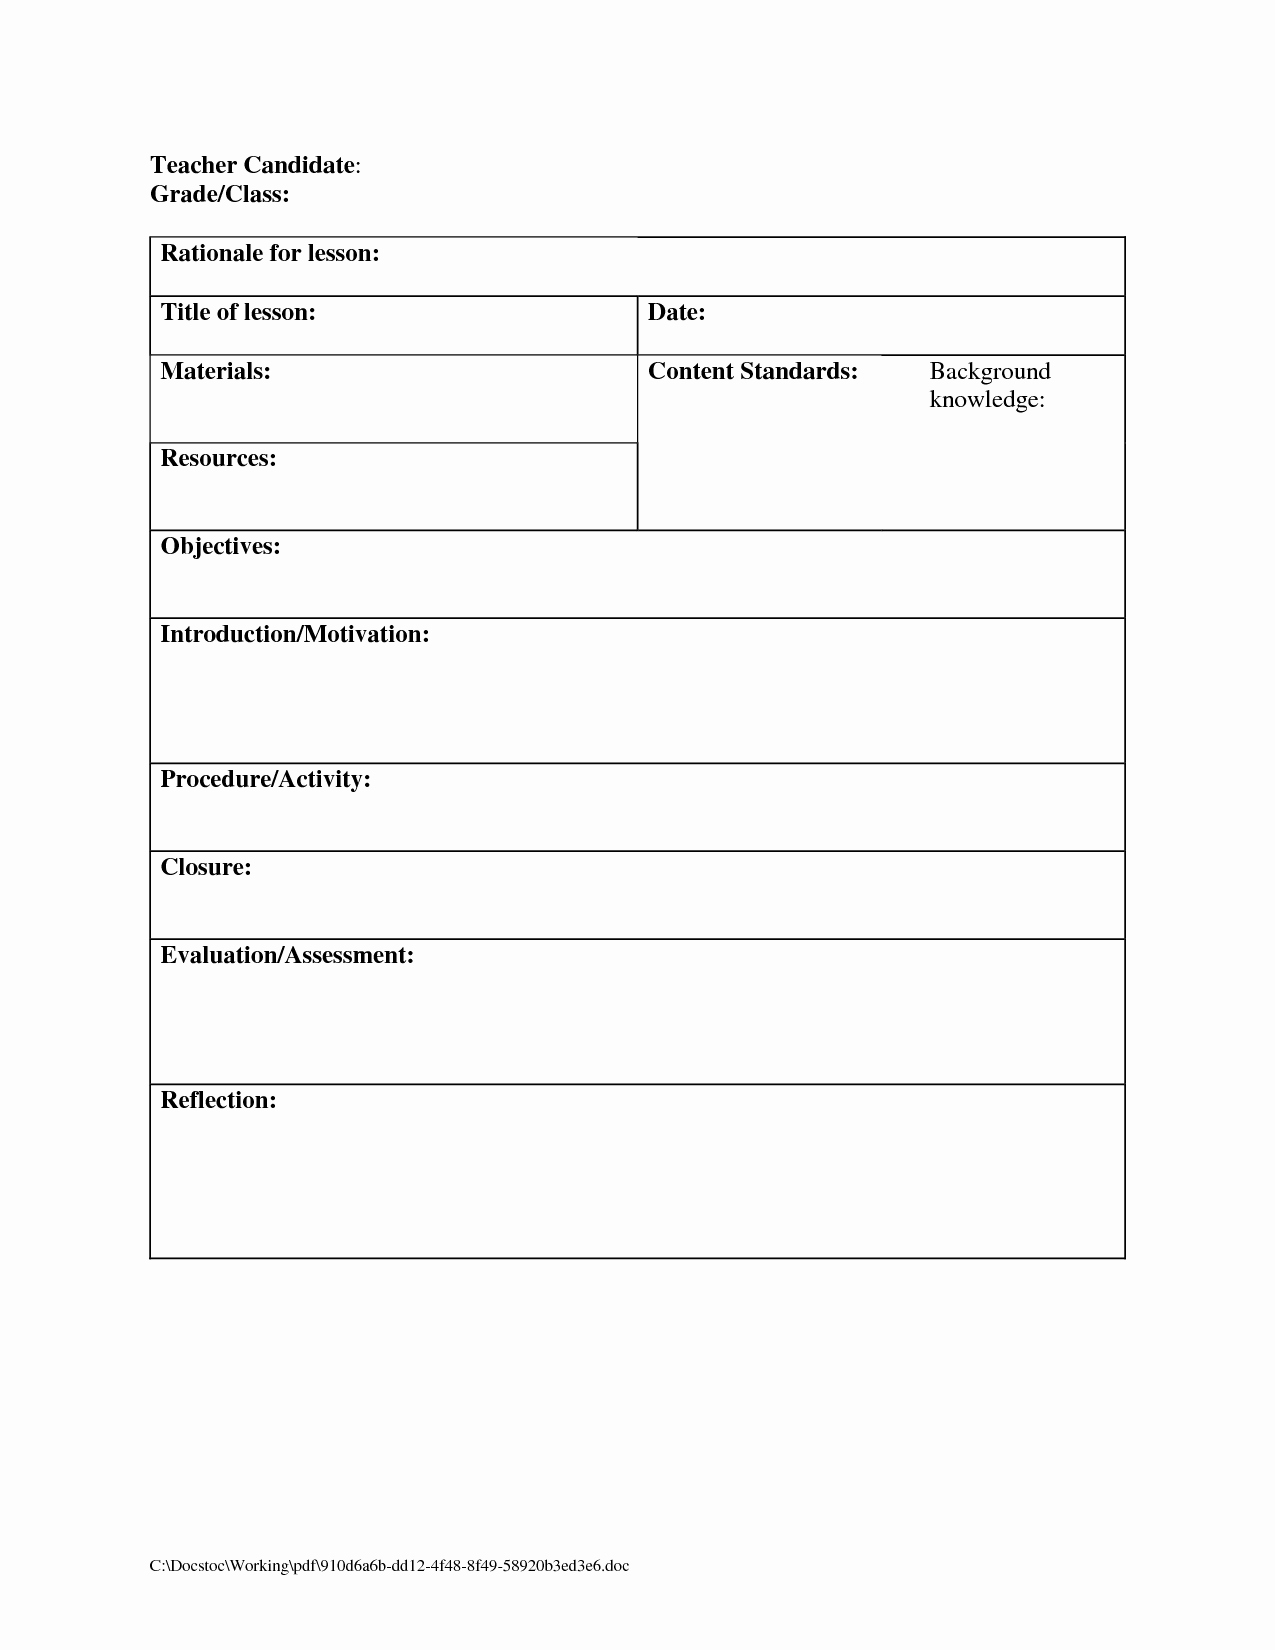 504 Plan Template Pdf Best Of Printable Blank Lesson Plans form for Counselors